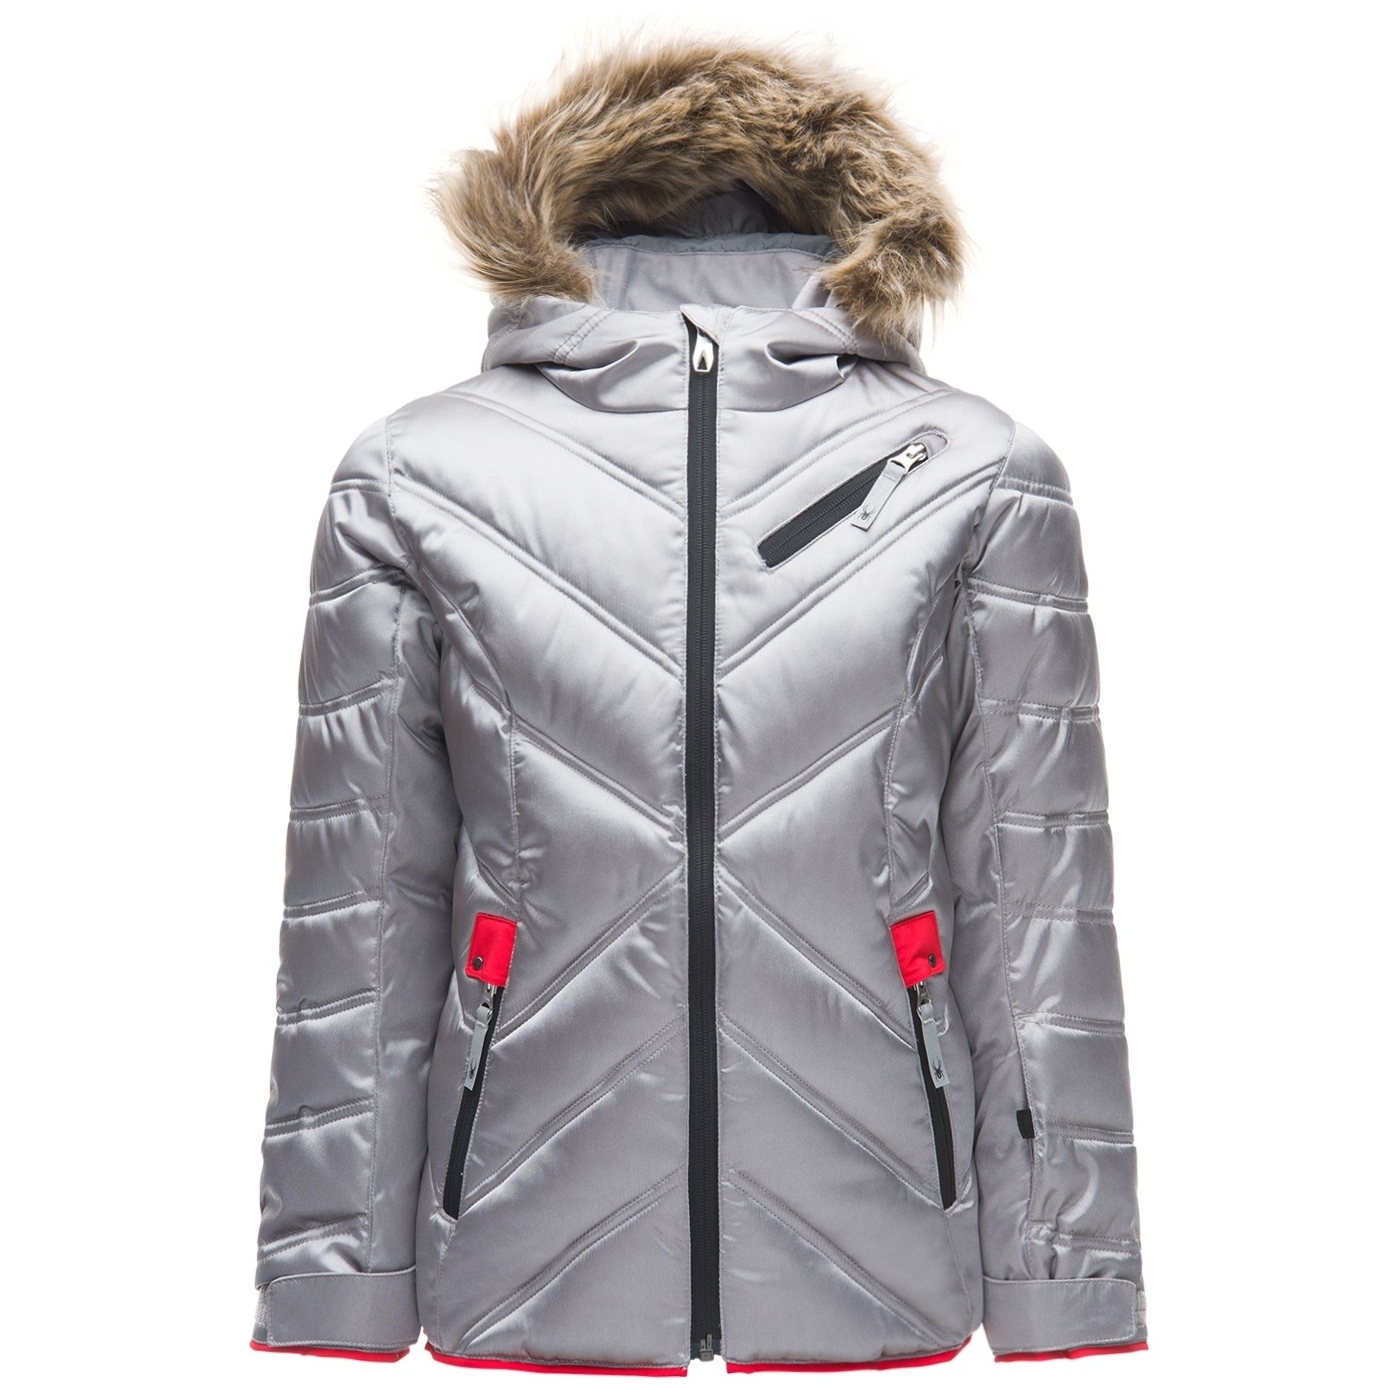 21b871cb42b26 Veste De Ski Spyder Girl's Leader Atlas Synthetic Slv Hib